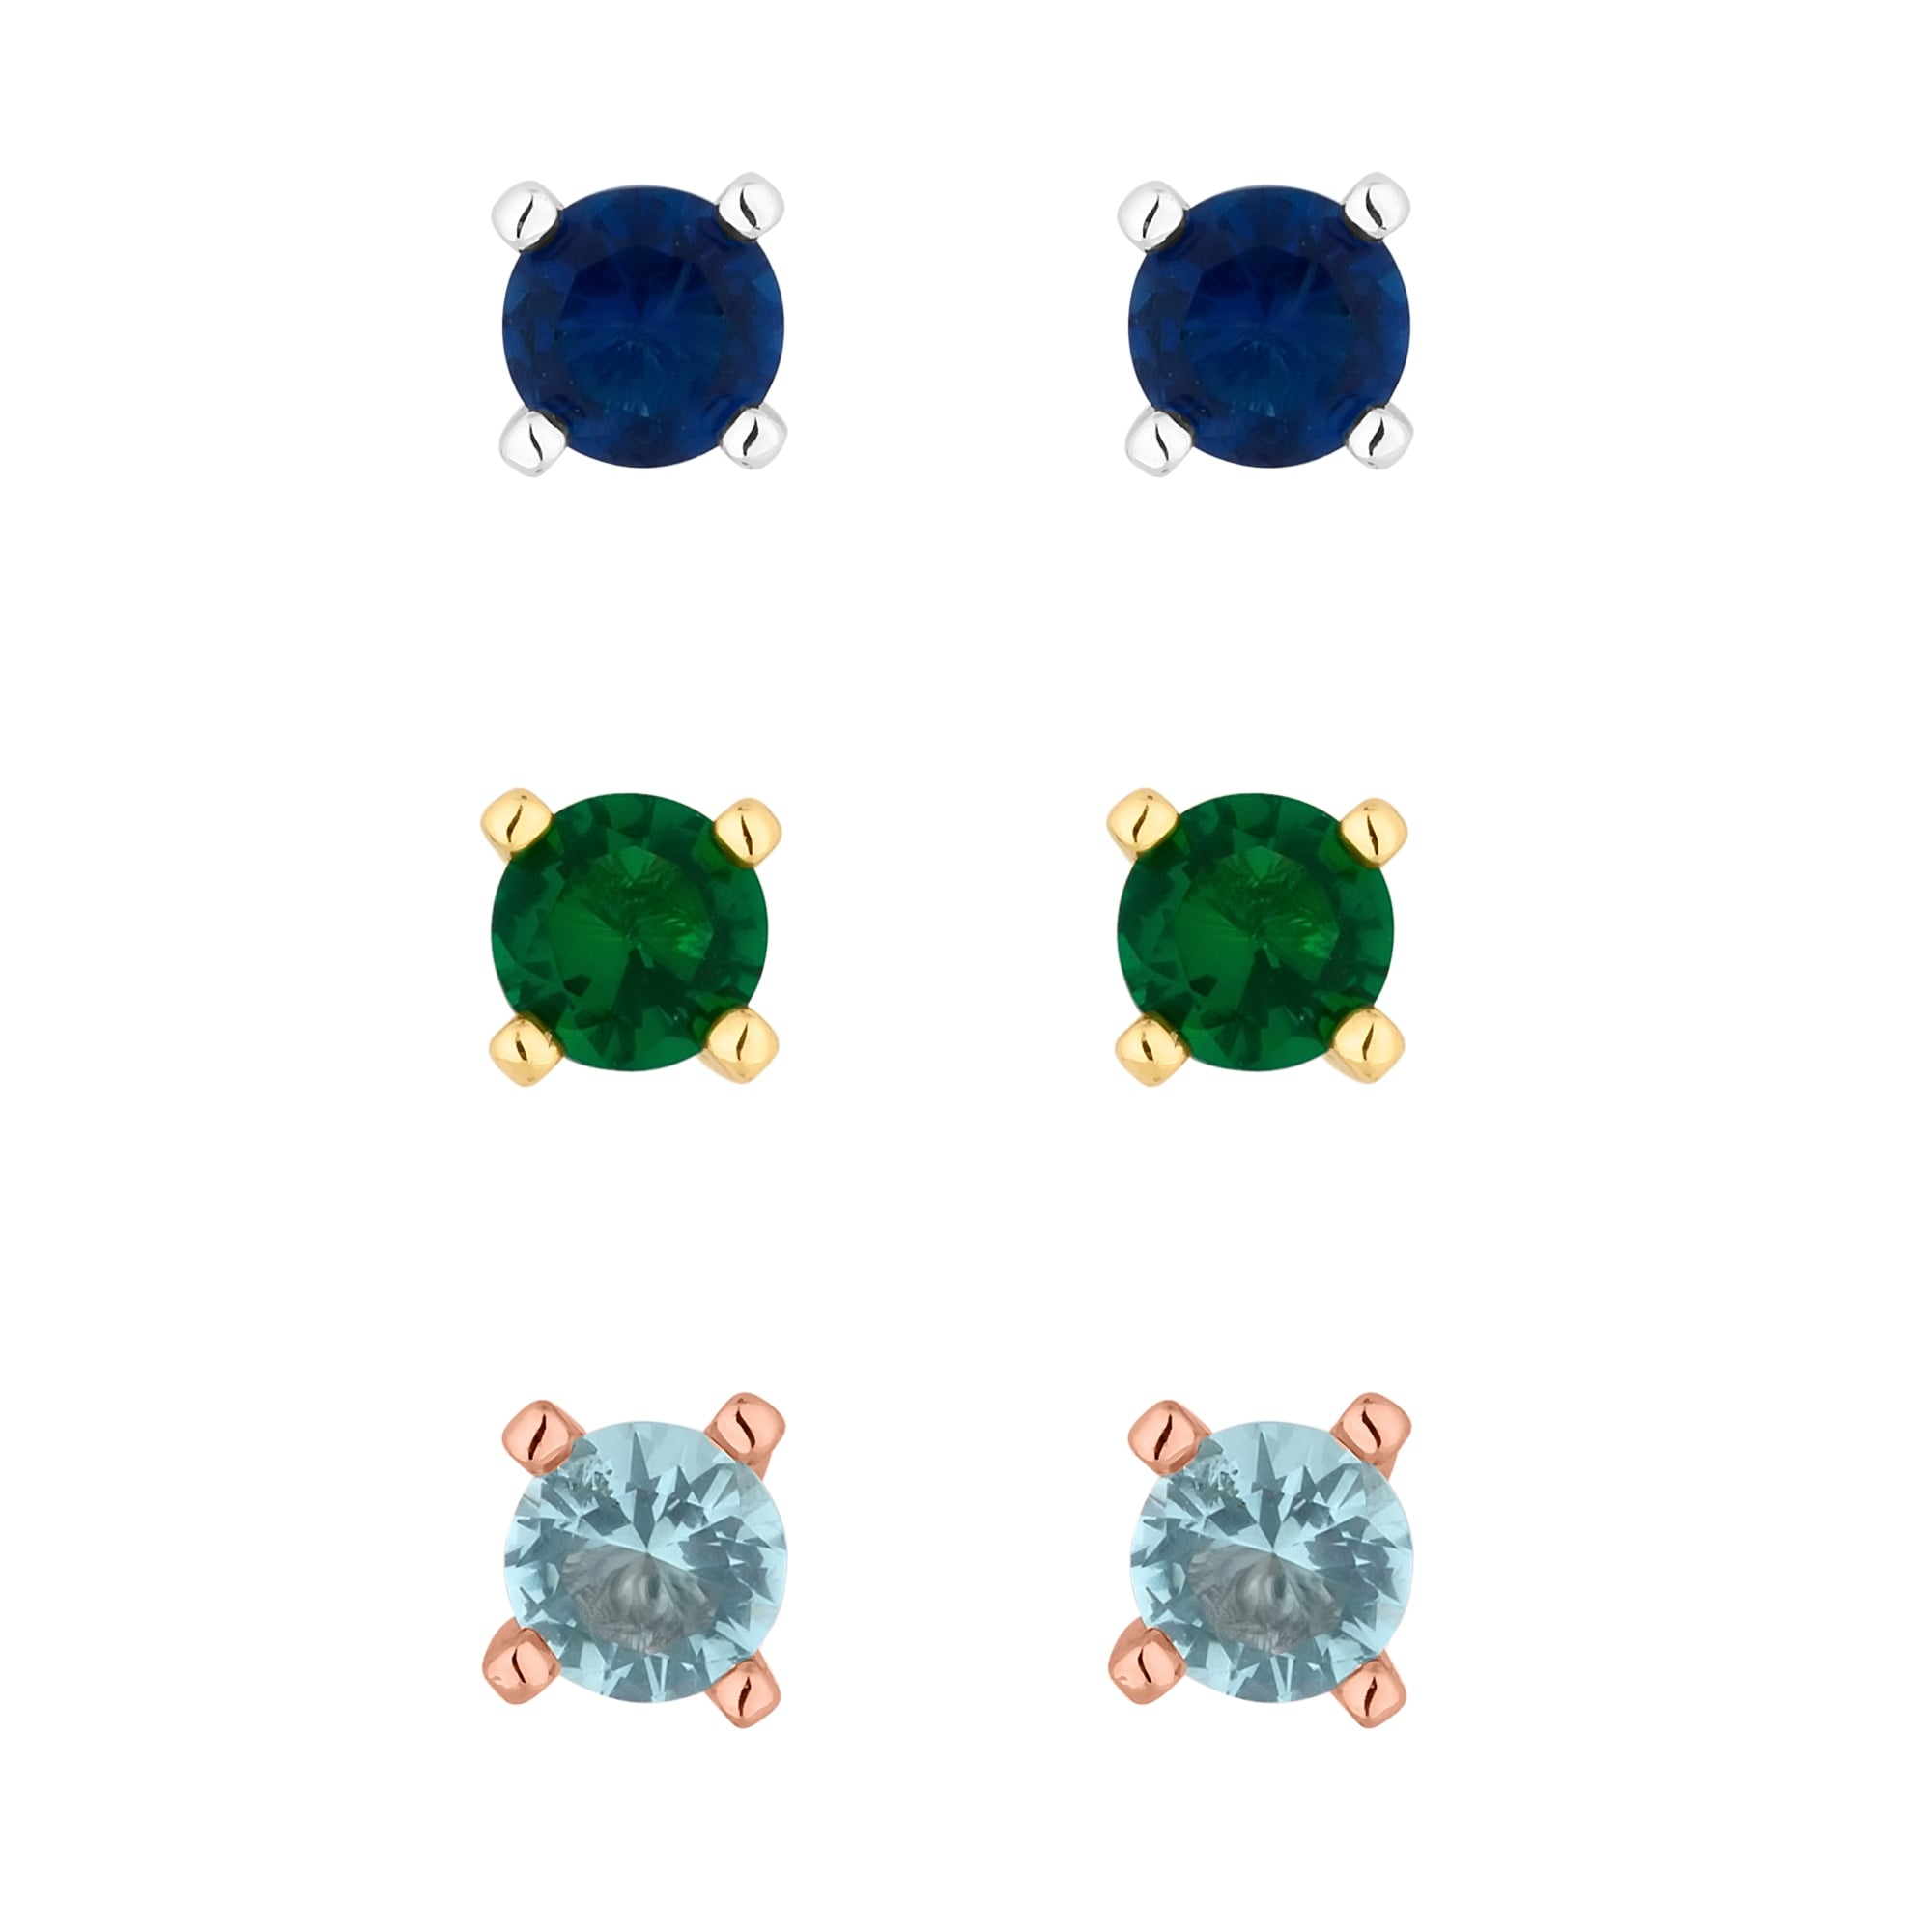 zirconia fullscreen lyst clear cubic metallic view stud earrings in carolee small jewelry